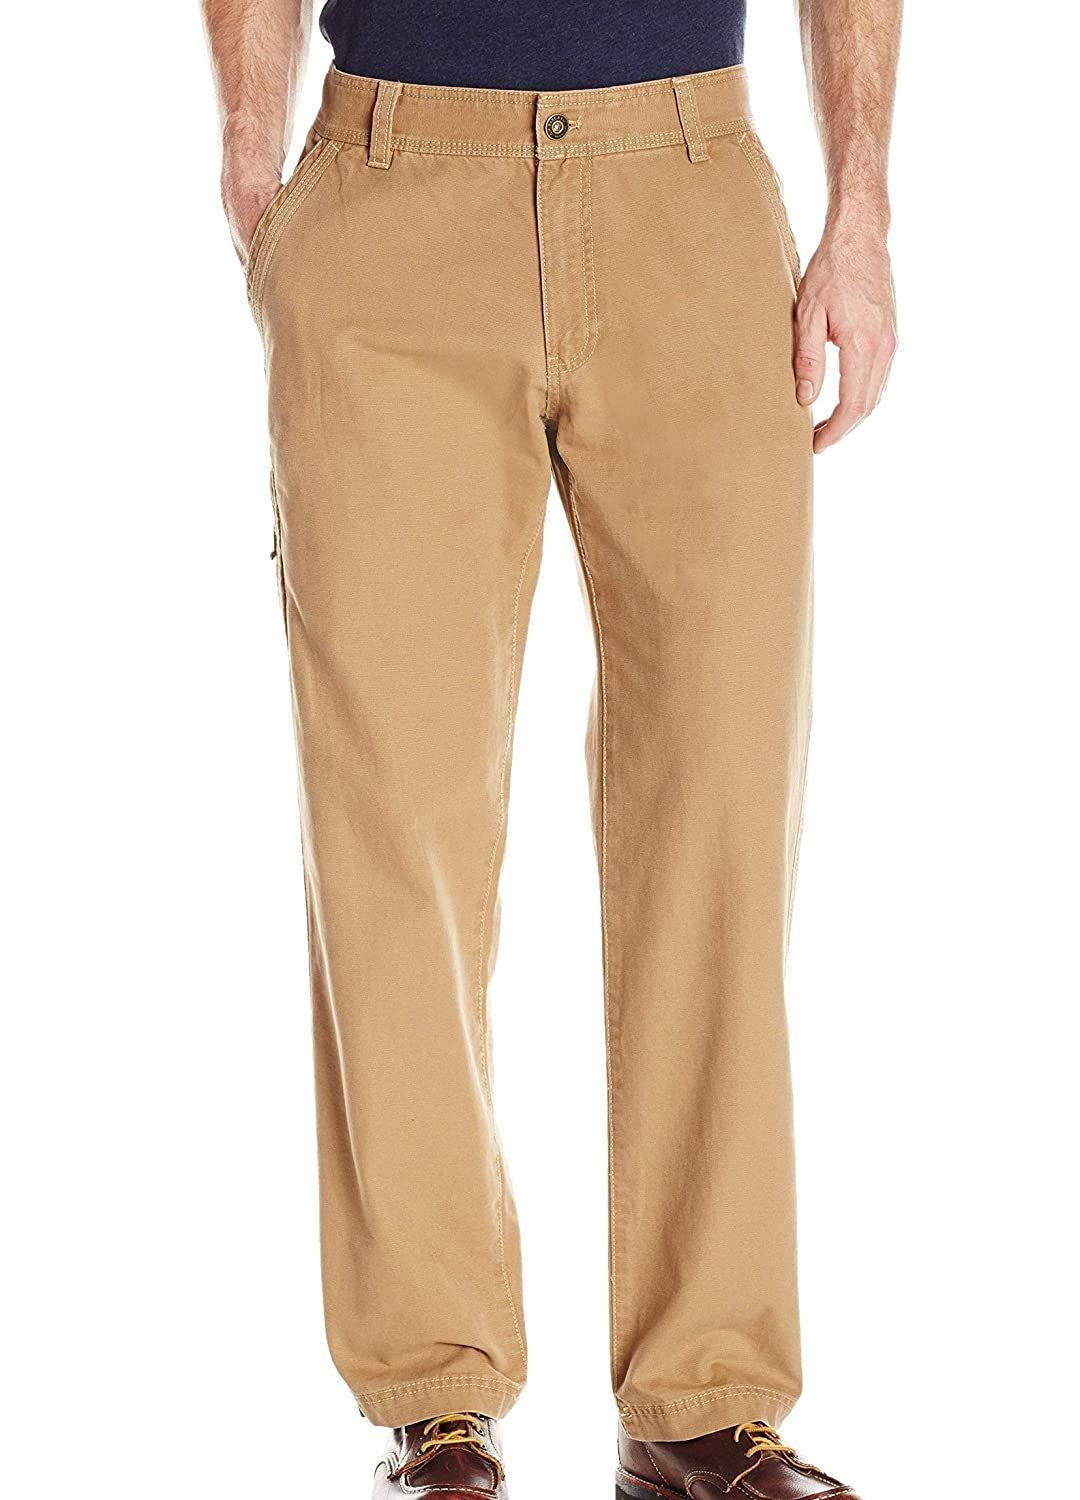 Bass /& Co G.H Mens Flat Front Canvas Terrain Pant